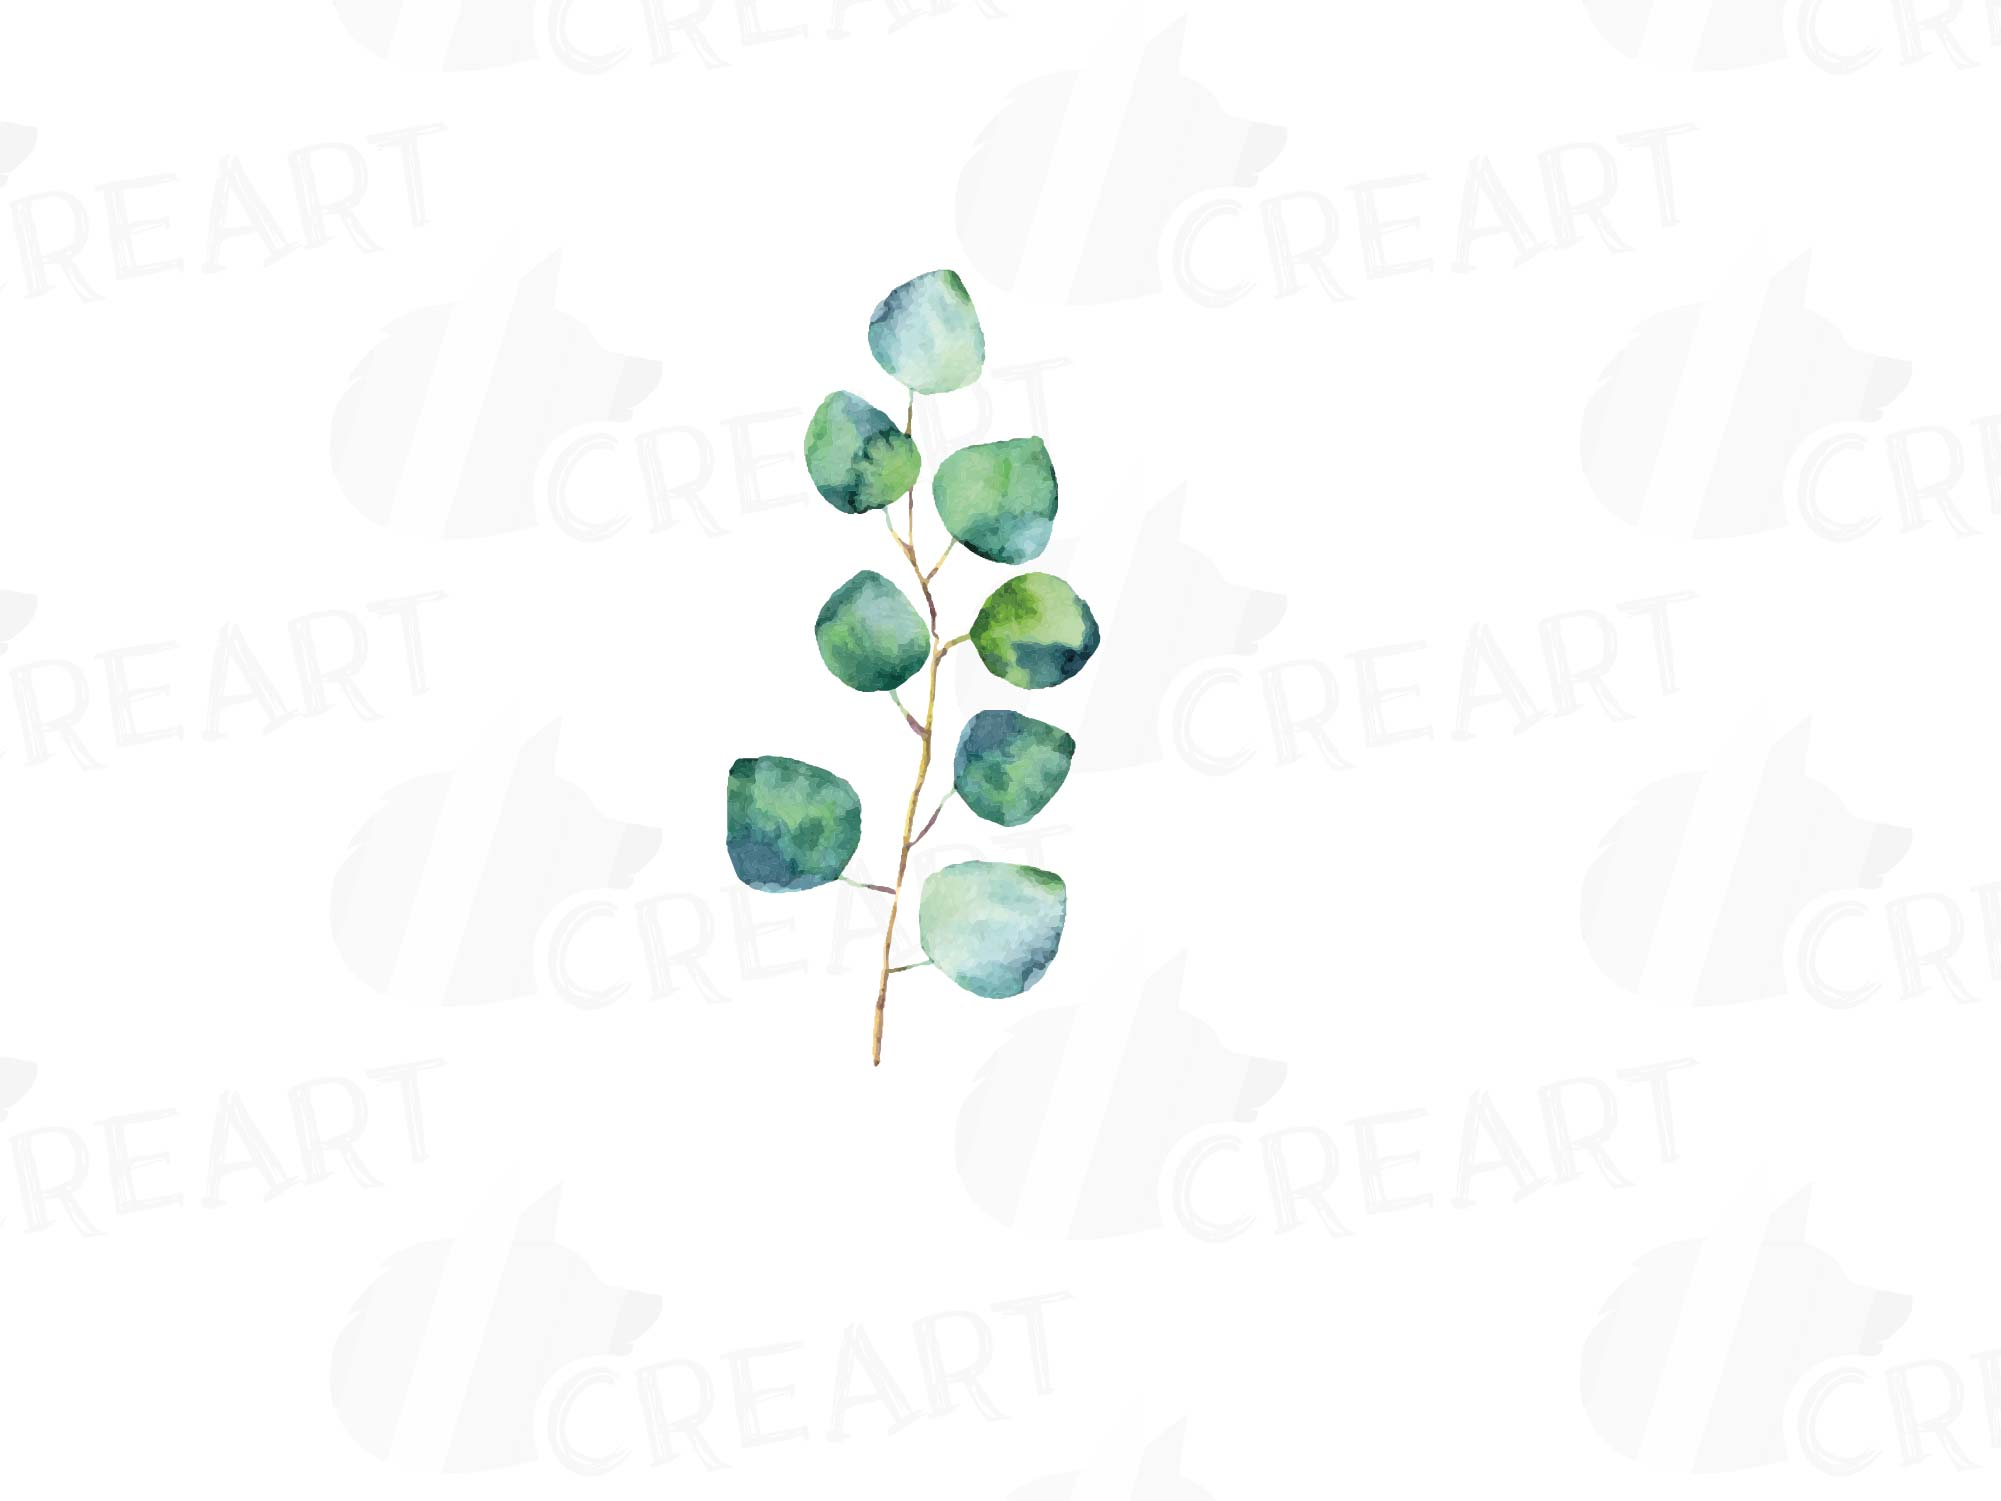 Eucalyptus leaves and branches watercolor clip art pack, Eucalyptus design  elements. PNG, jpg, svg, vector illustrator & corel files included.